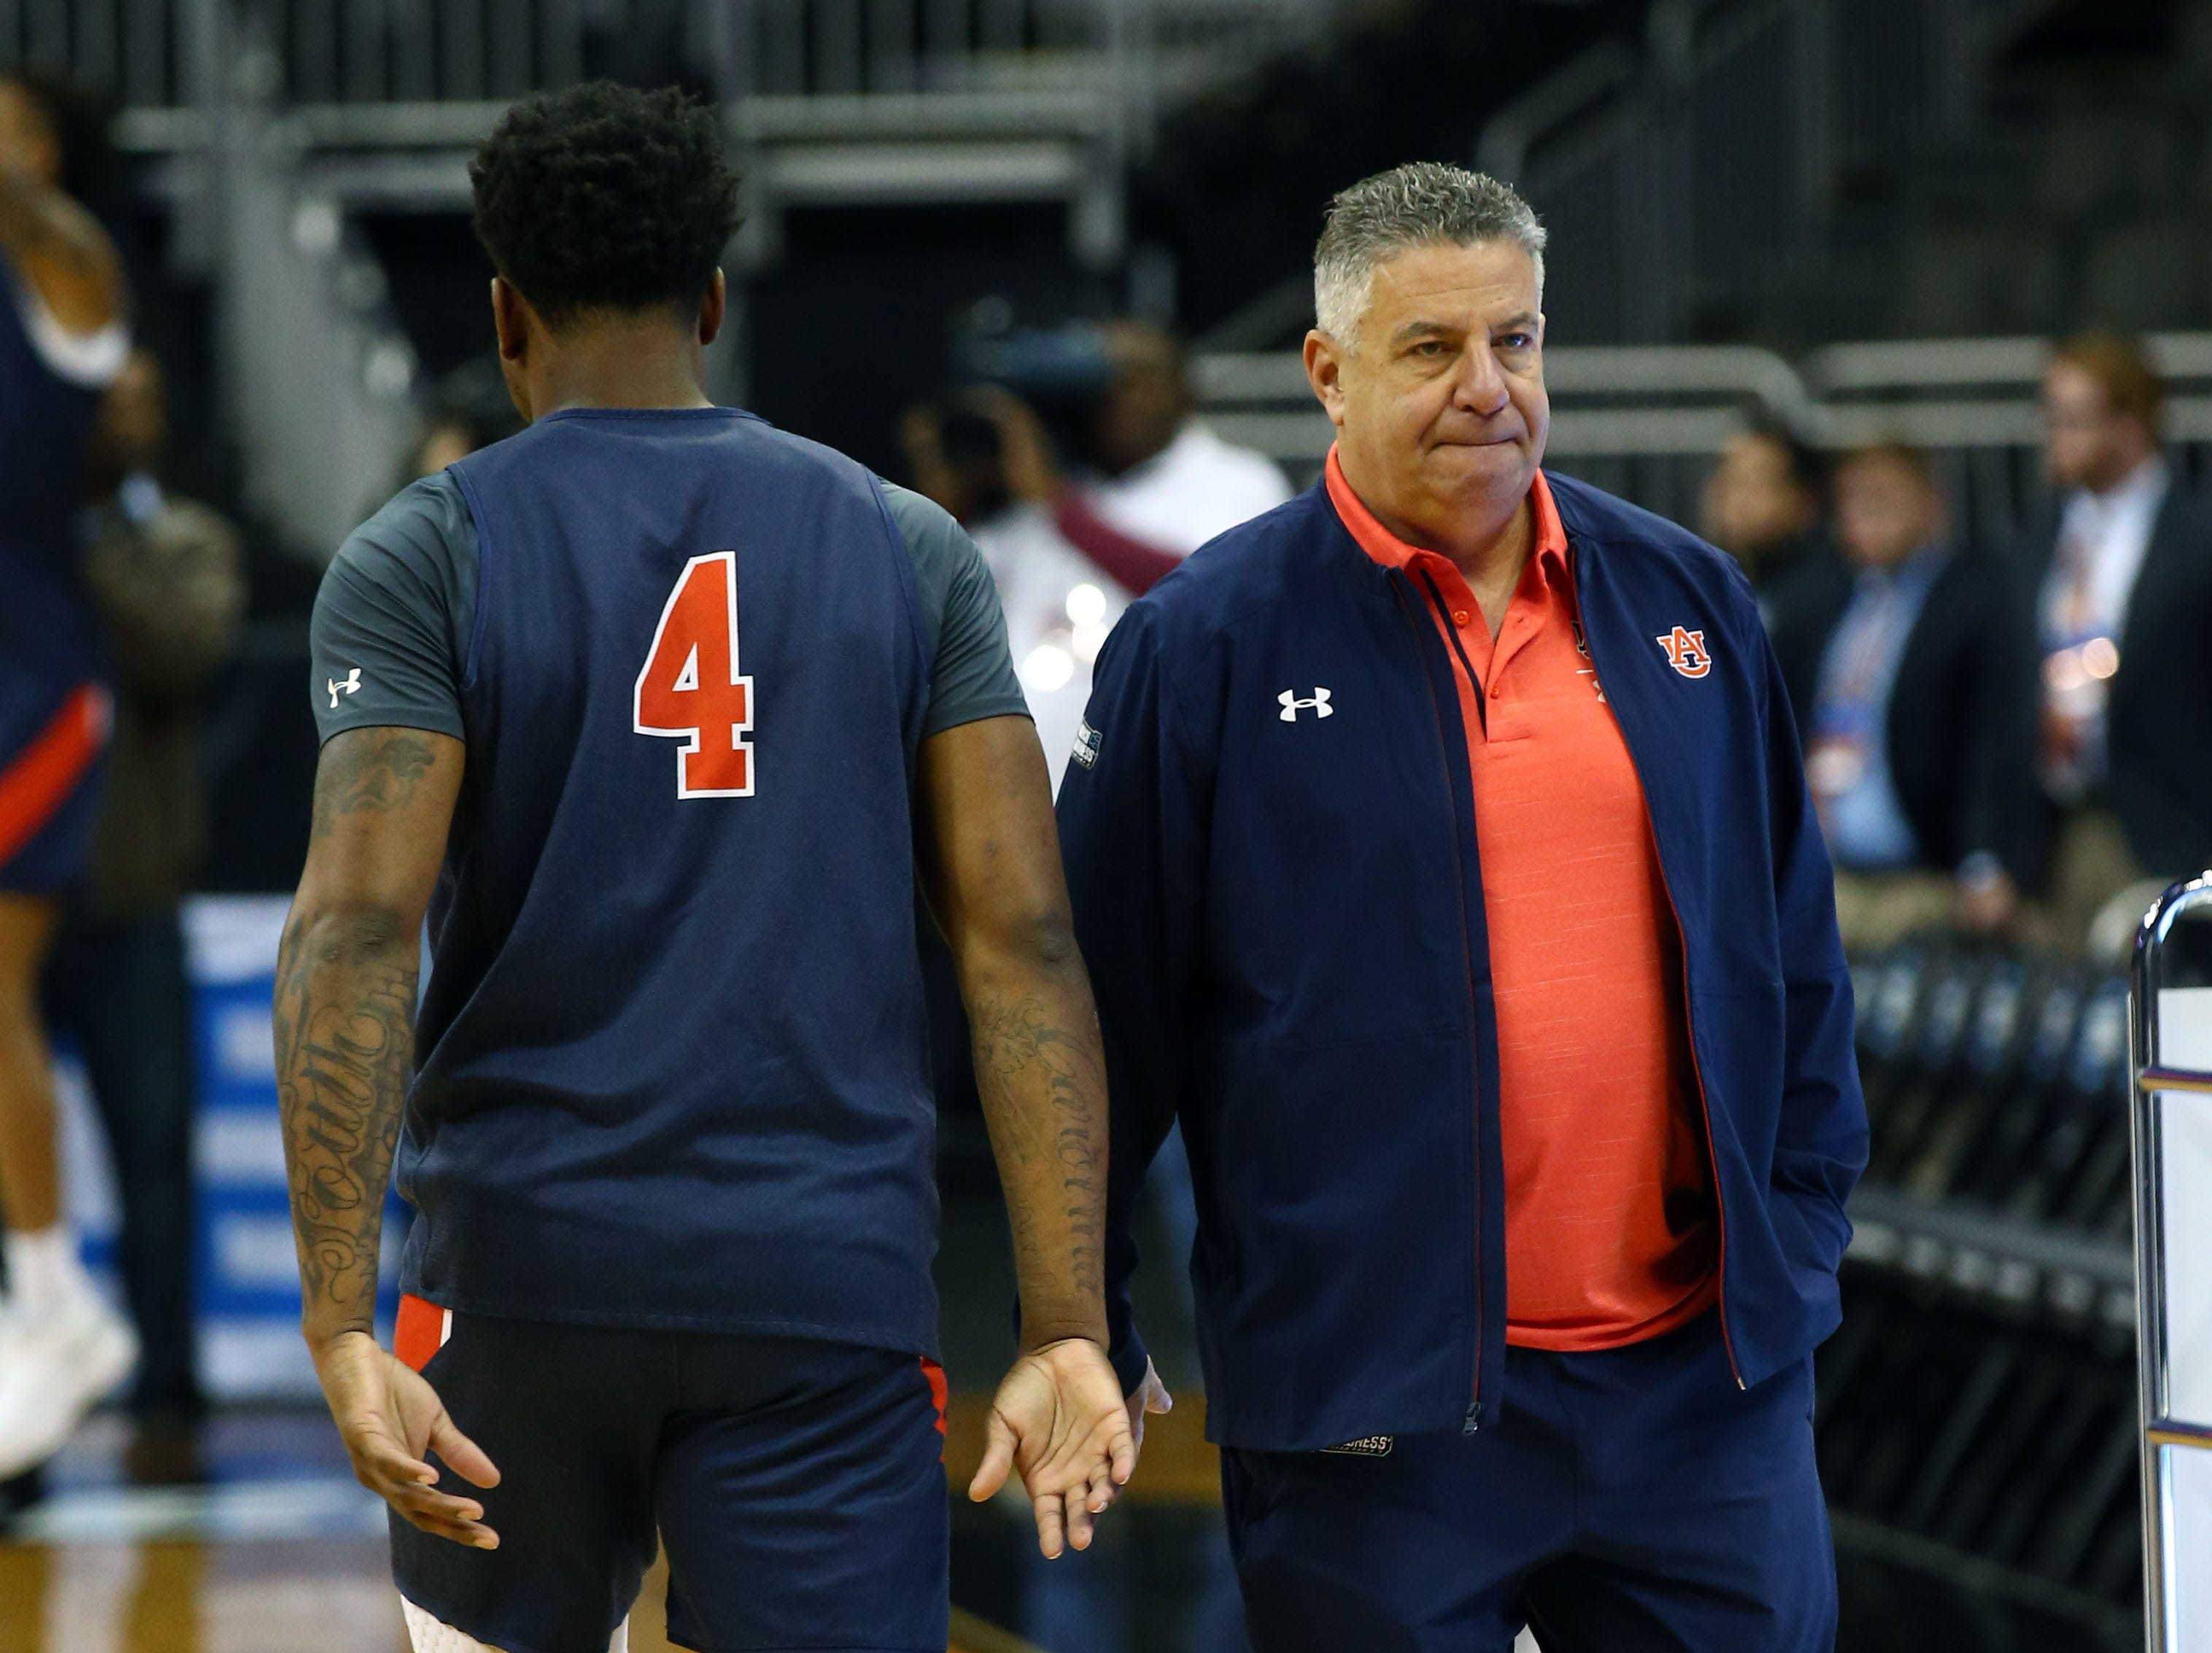 Mar 28, 2019; Kansas City, MO, United States;  Auburn Tigers head coach Bruce Pearl and guard Malik Dunbar (4) during practice for the midwest regional of the 2019 NCAA Tournament at Sprint Center. Mandatory Credit: Jay Biggerstaff-USA TODAY Sports